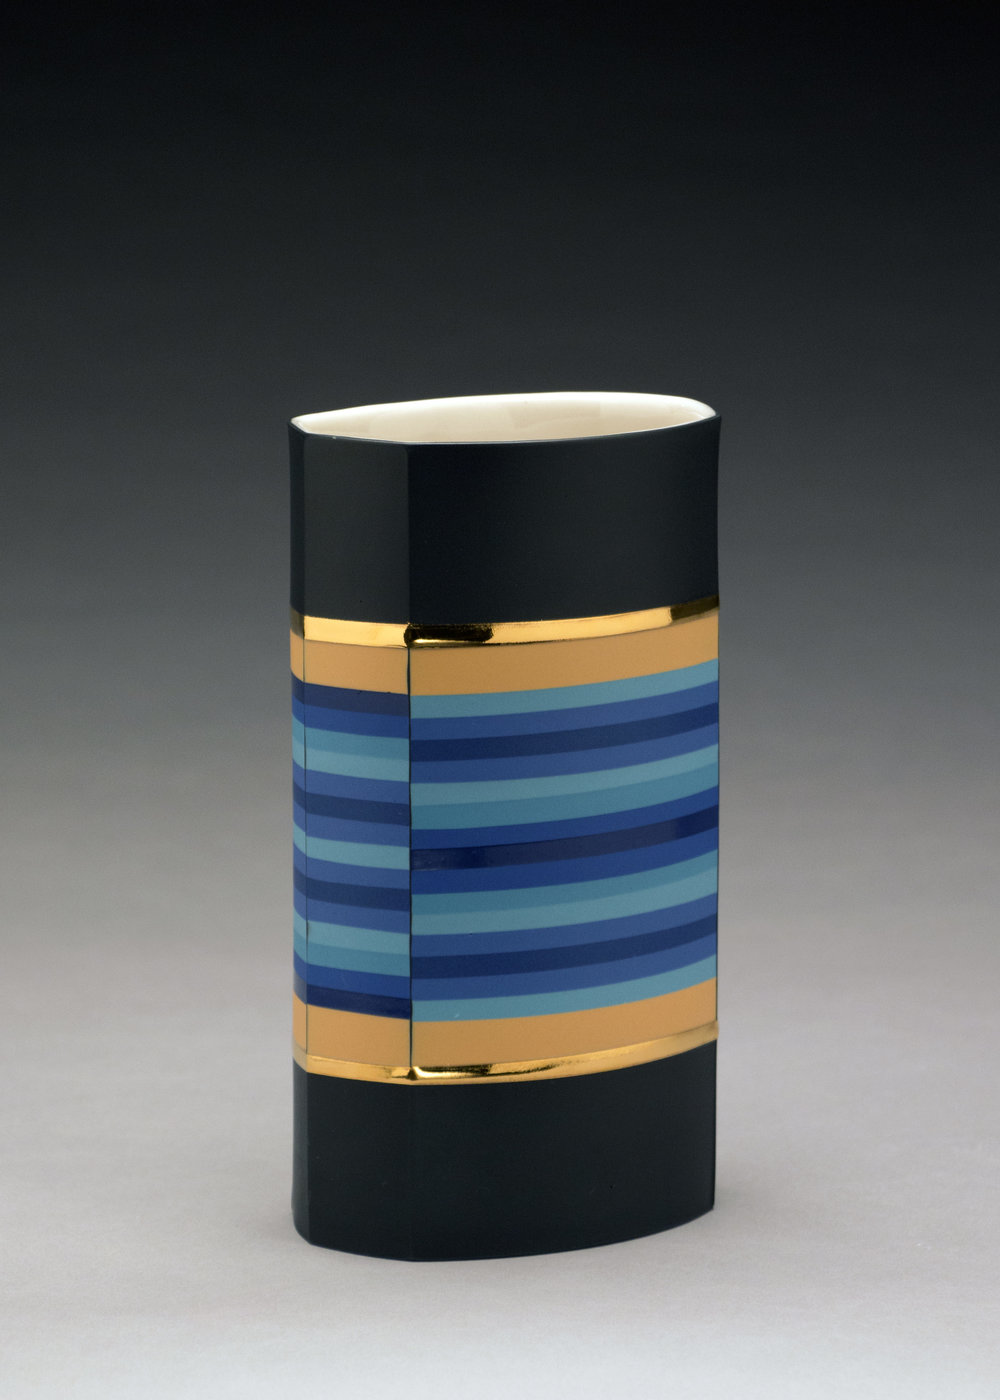 Peter Pincus,  Banded Column , 2018, colored porcelain, gold luster, 8 x 4.5 x 3.5 inches, $1500.